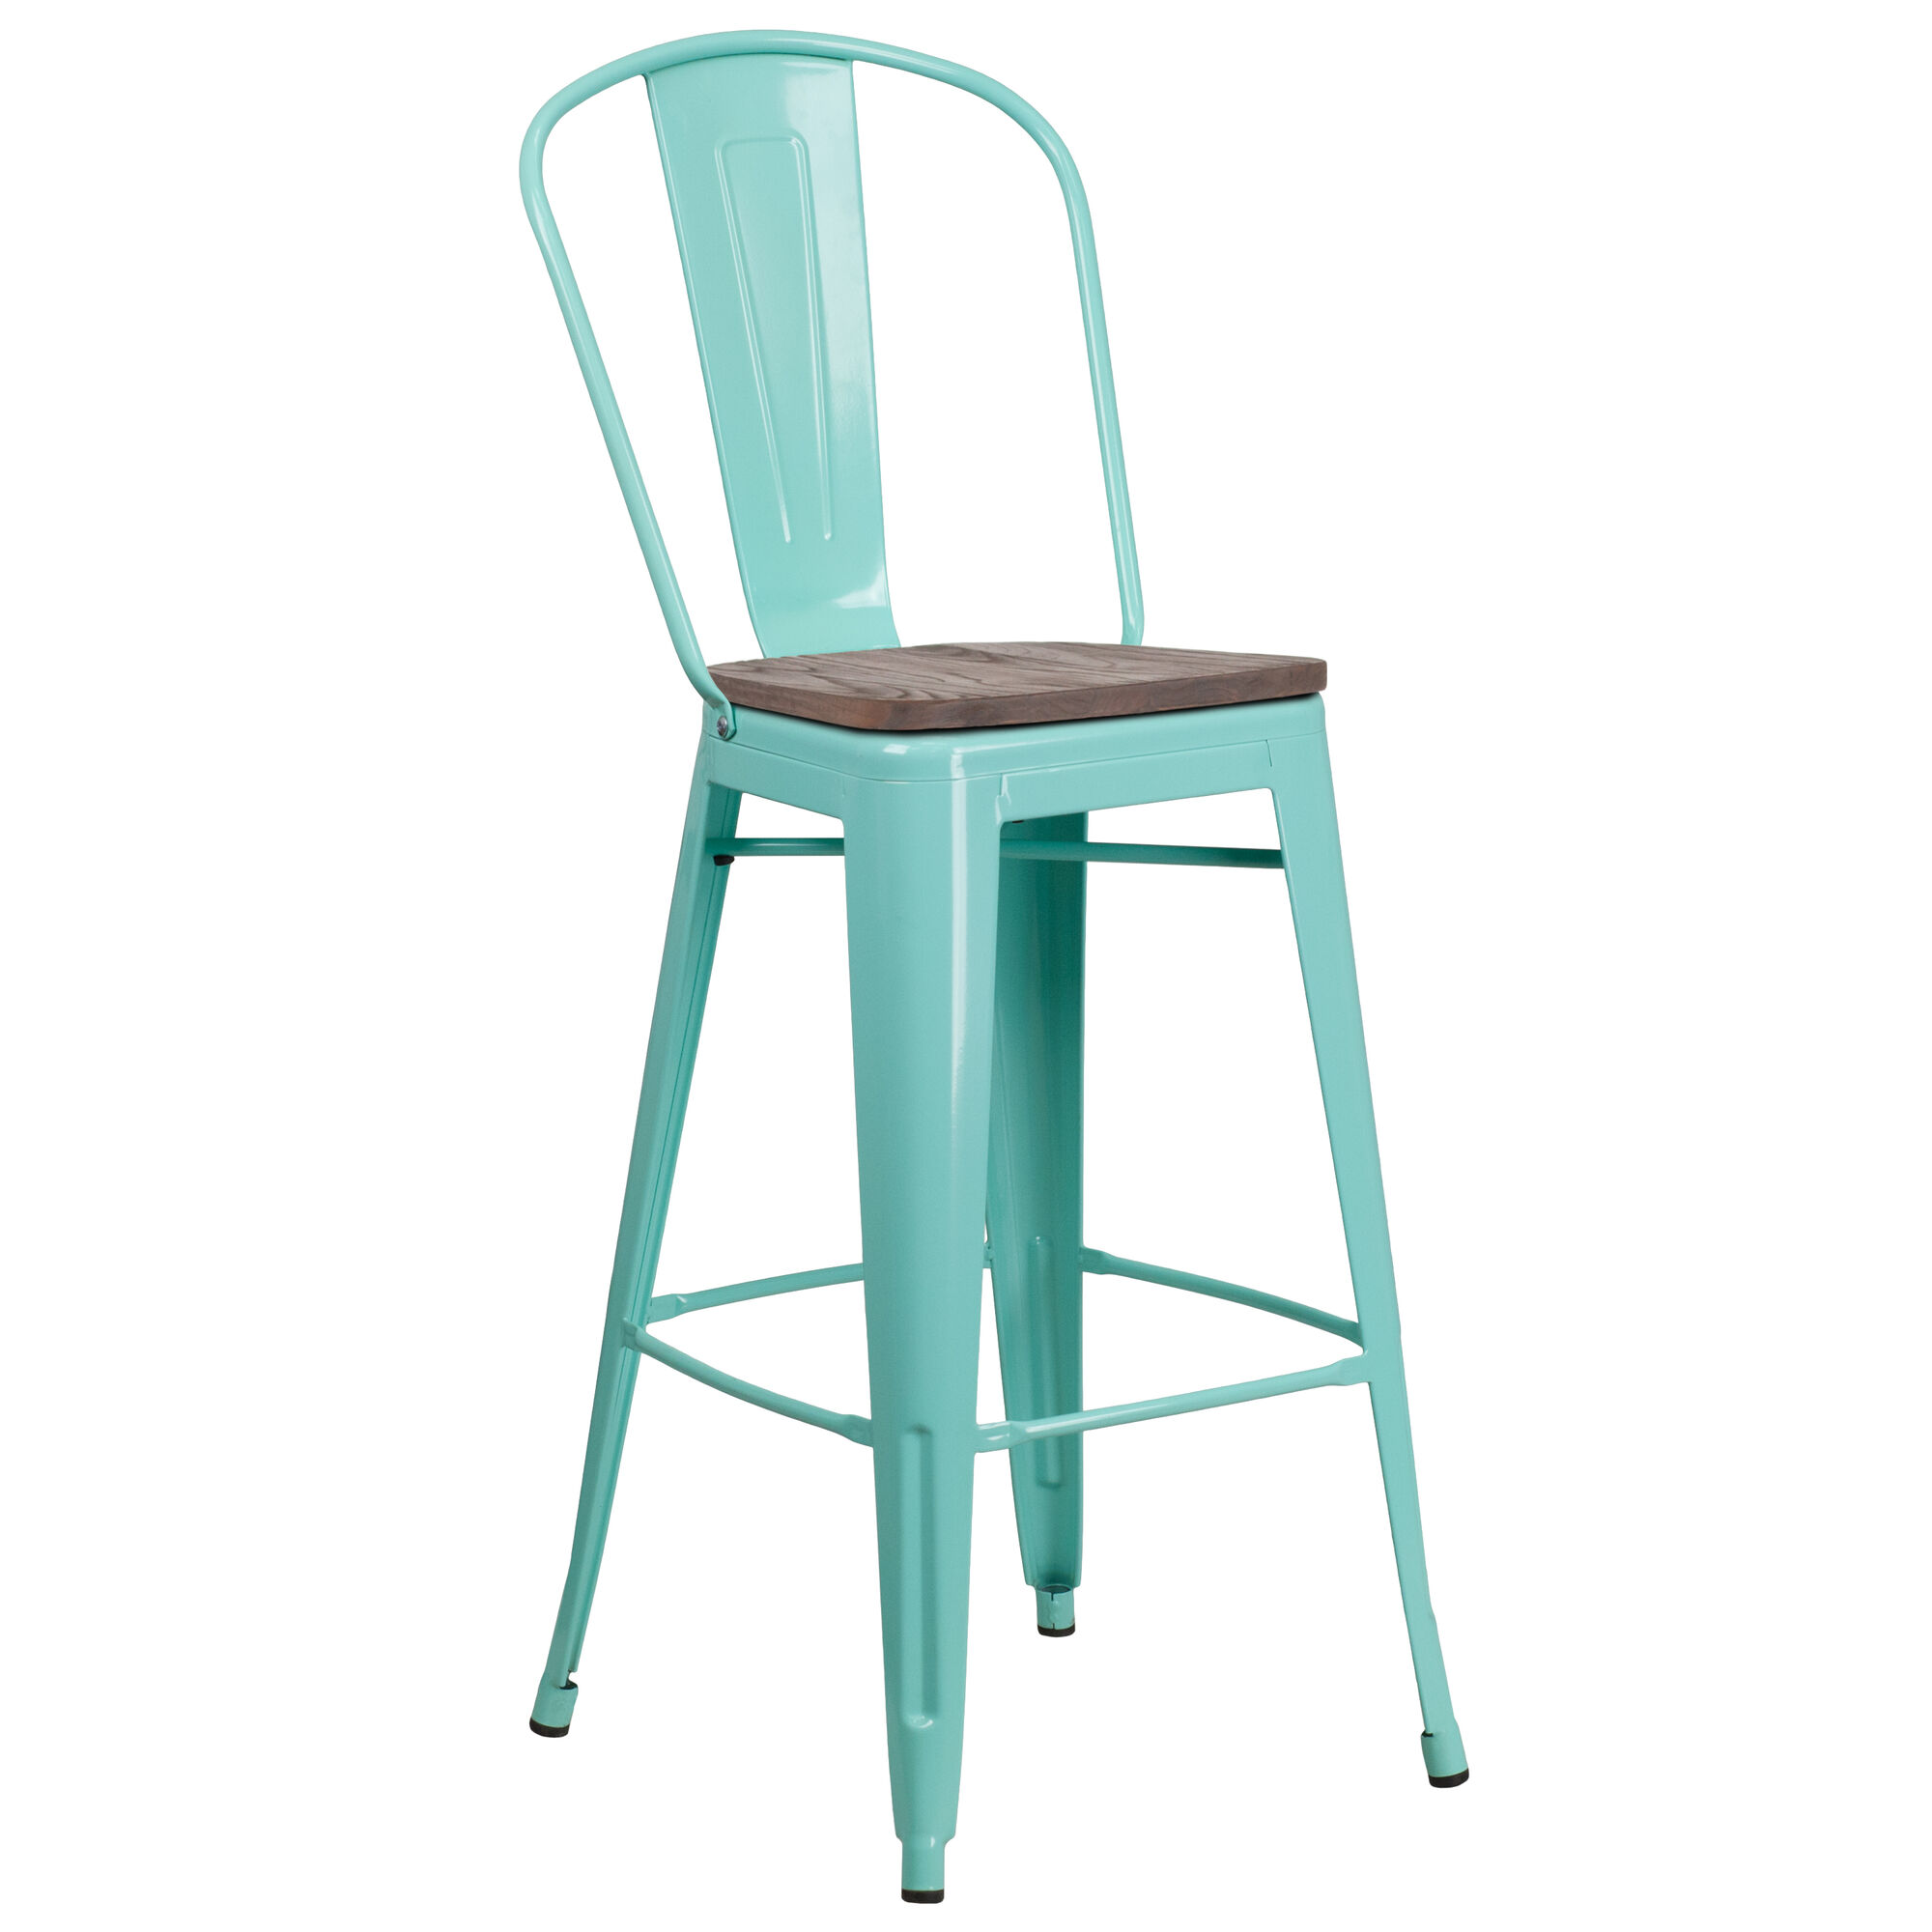 Magnificent 30 High Mint Green Metal Barstool With Back And Wood Seat Pabps2019 Chair Design Images Pabps2019Com